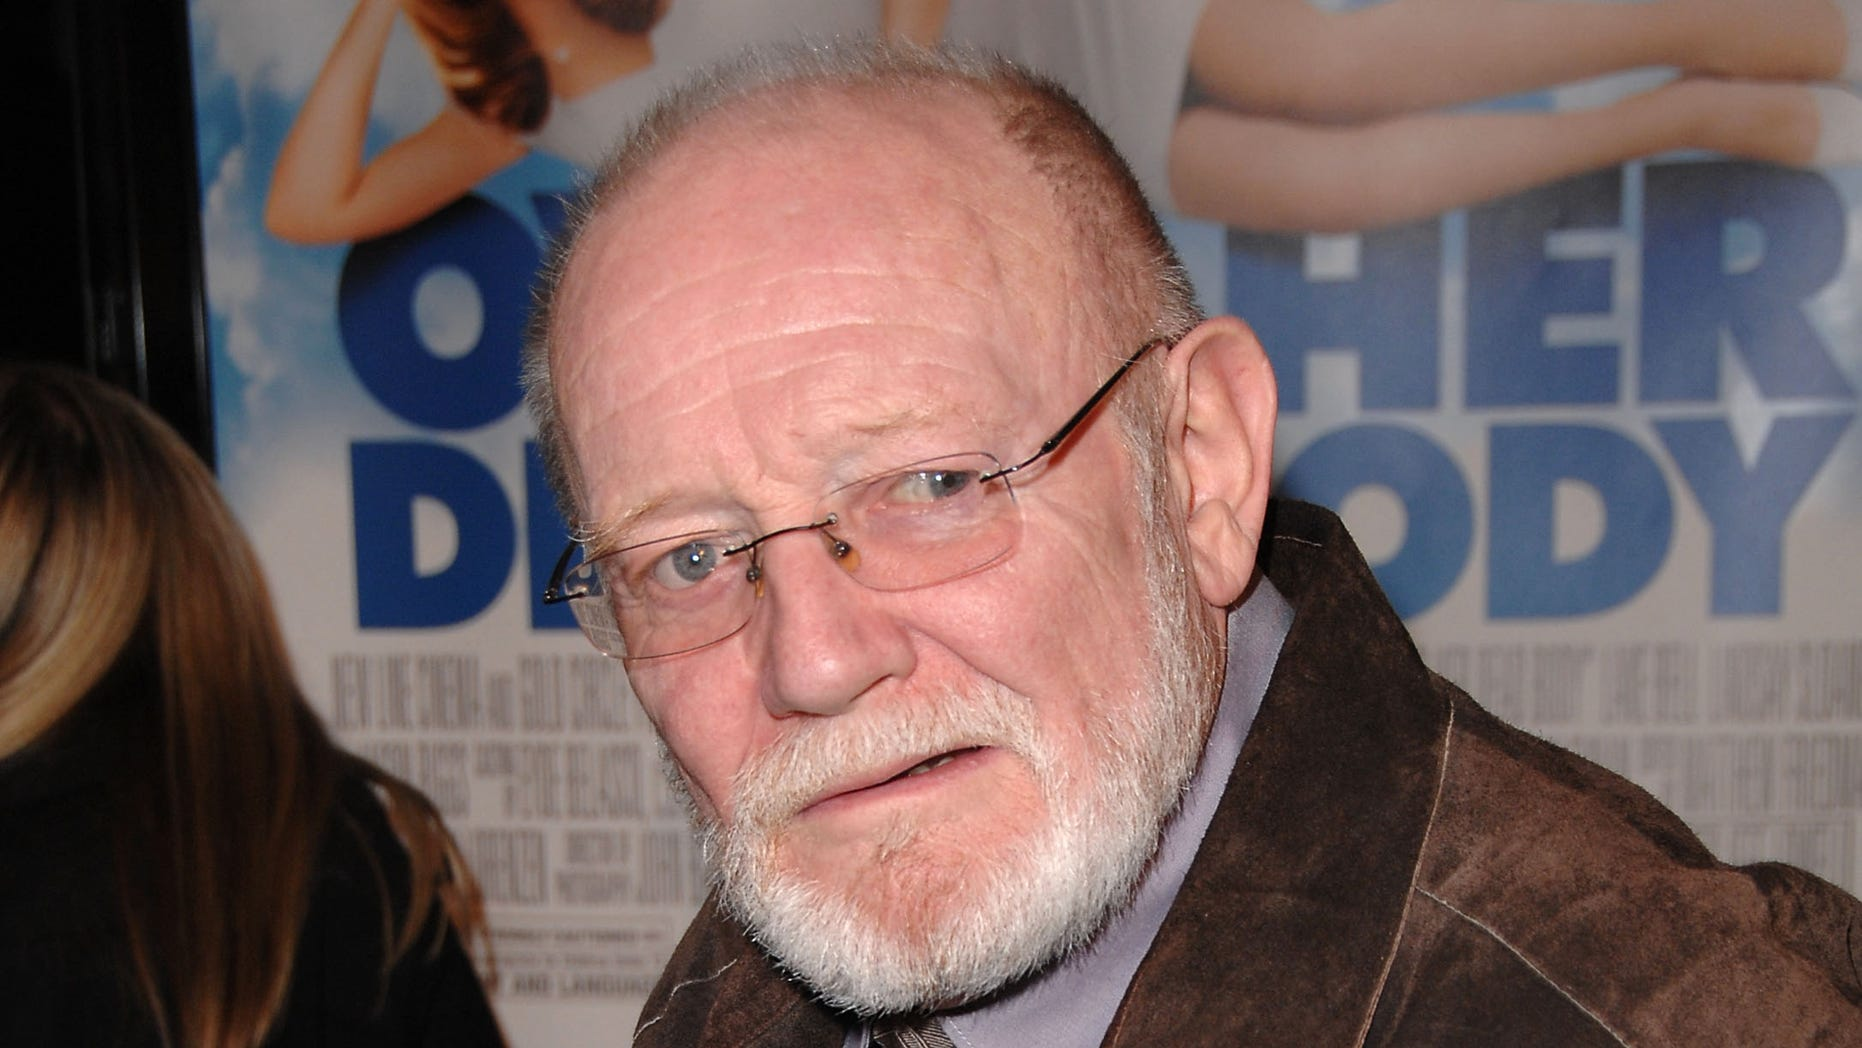 Actor William Morgan Sheppard died this week, according to his son Mark.